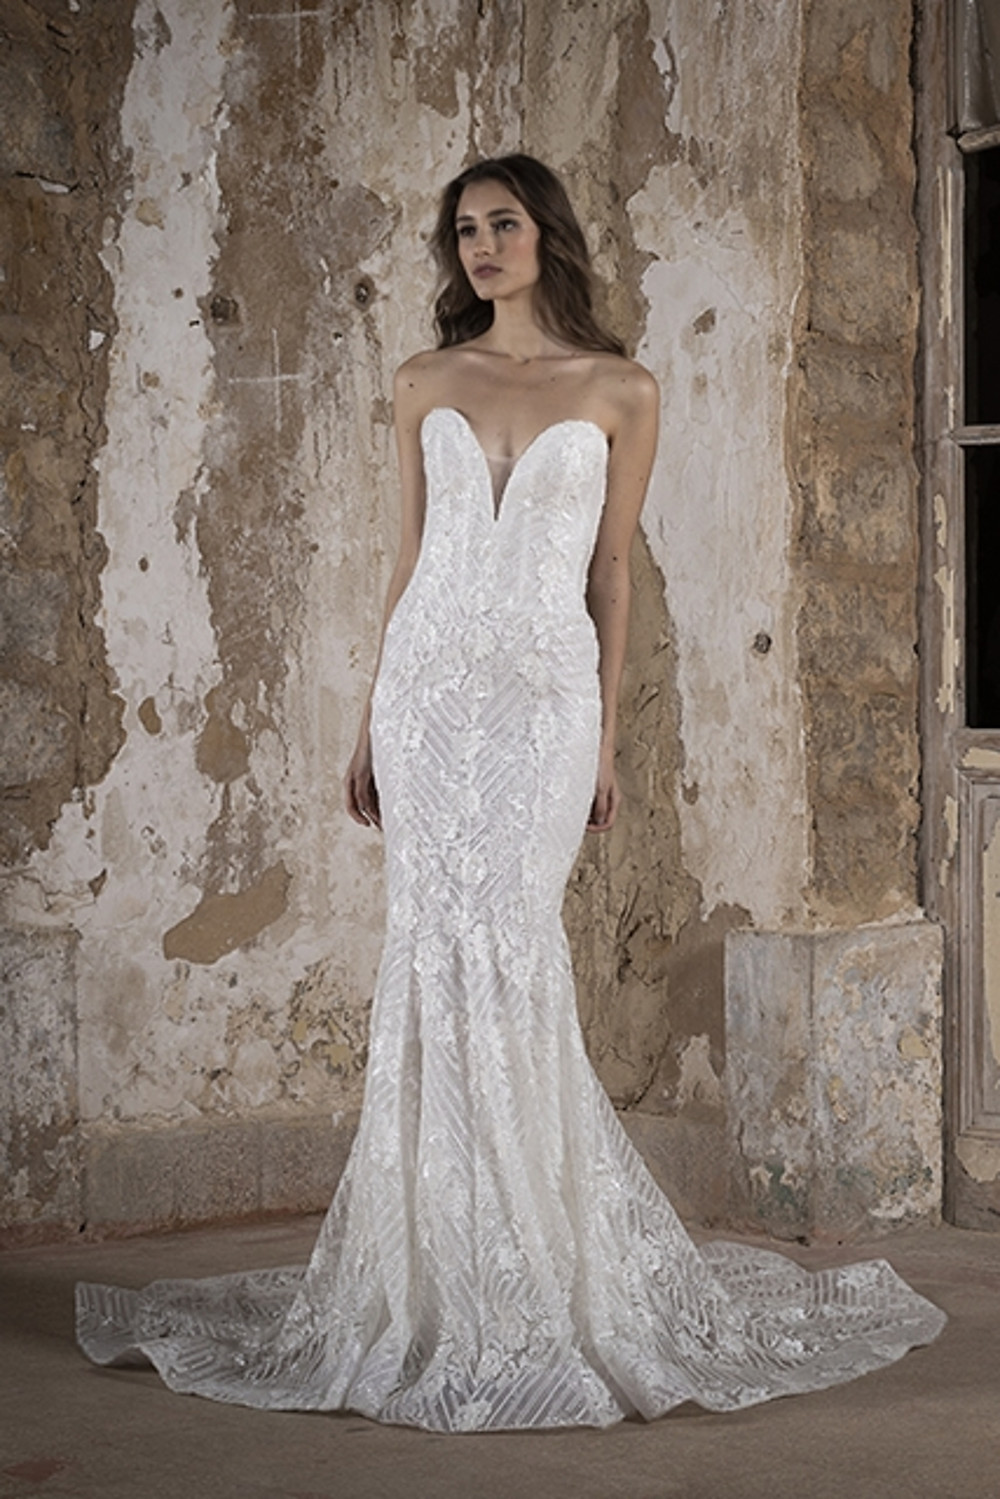 A mermaid shaped wedding gown with floral embroidery and sequin detailing